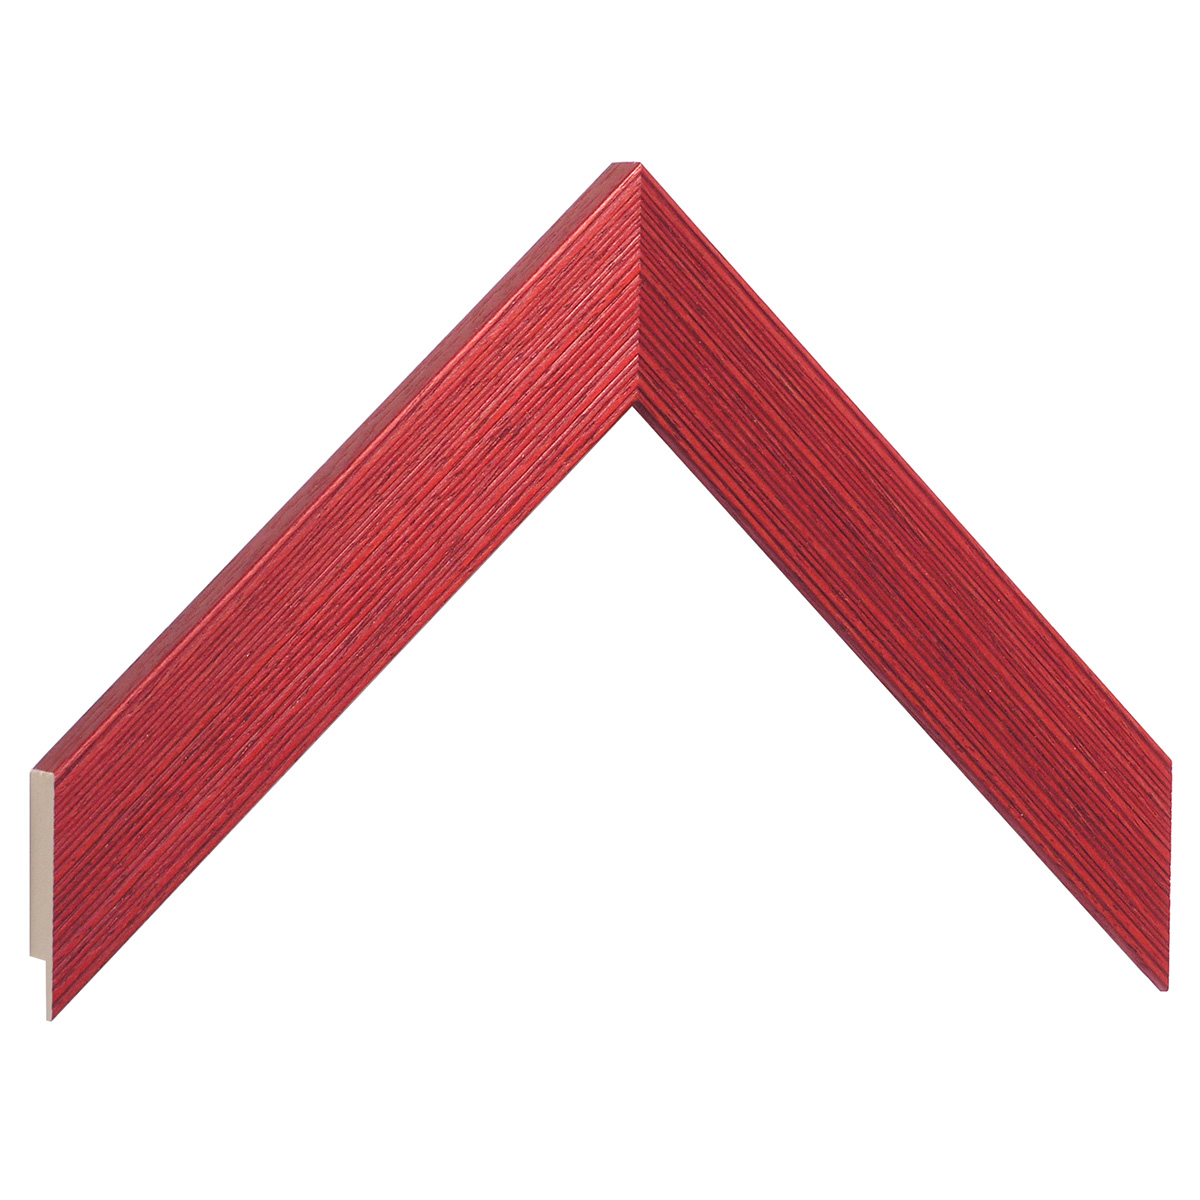 Moulding ayous, width 30mm height 14 - streaked red finish